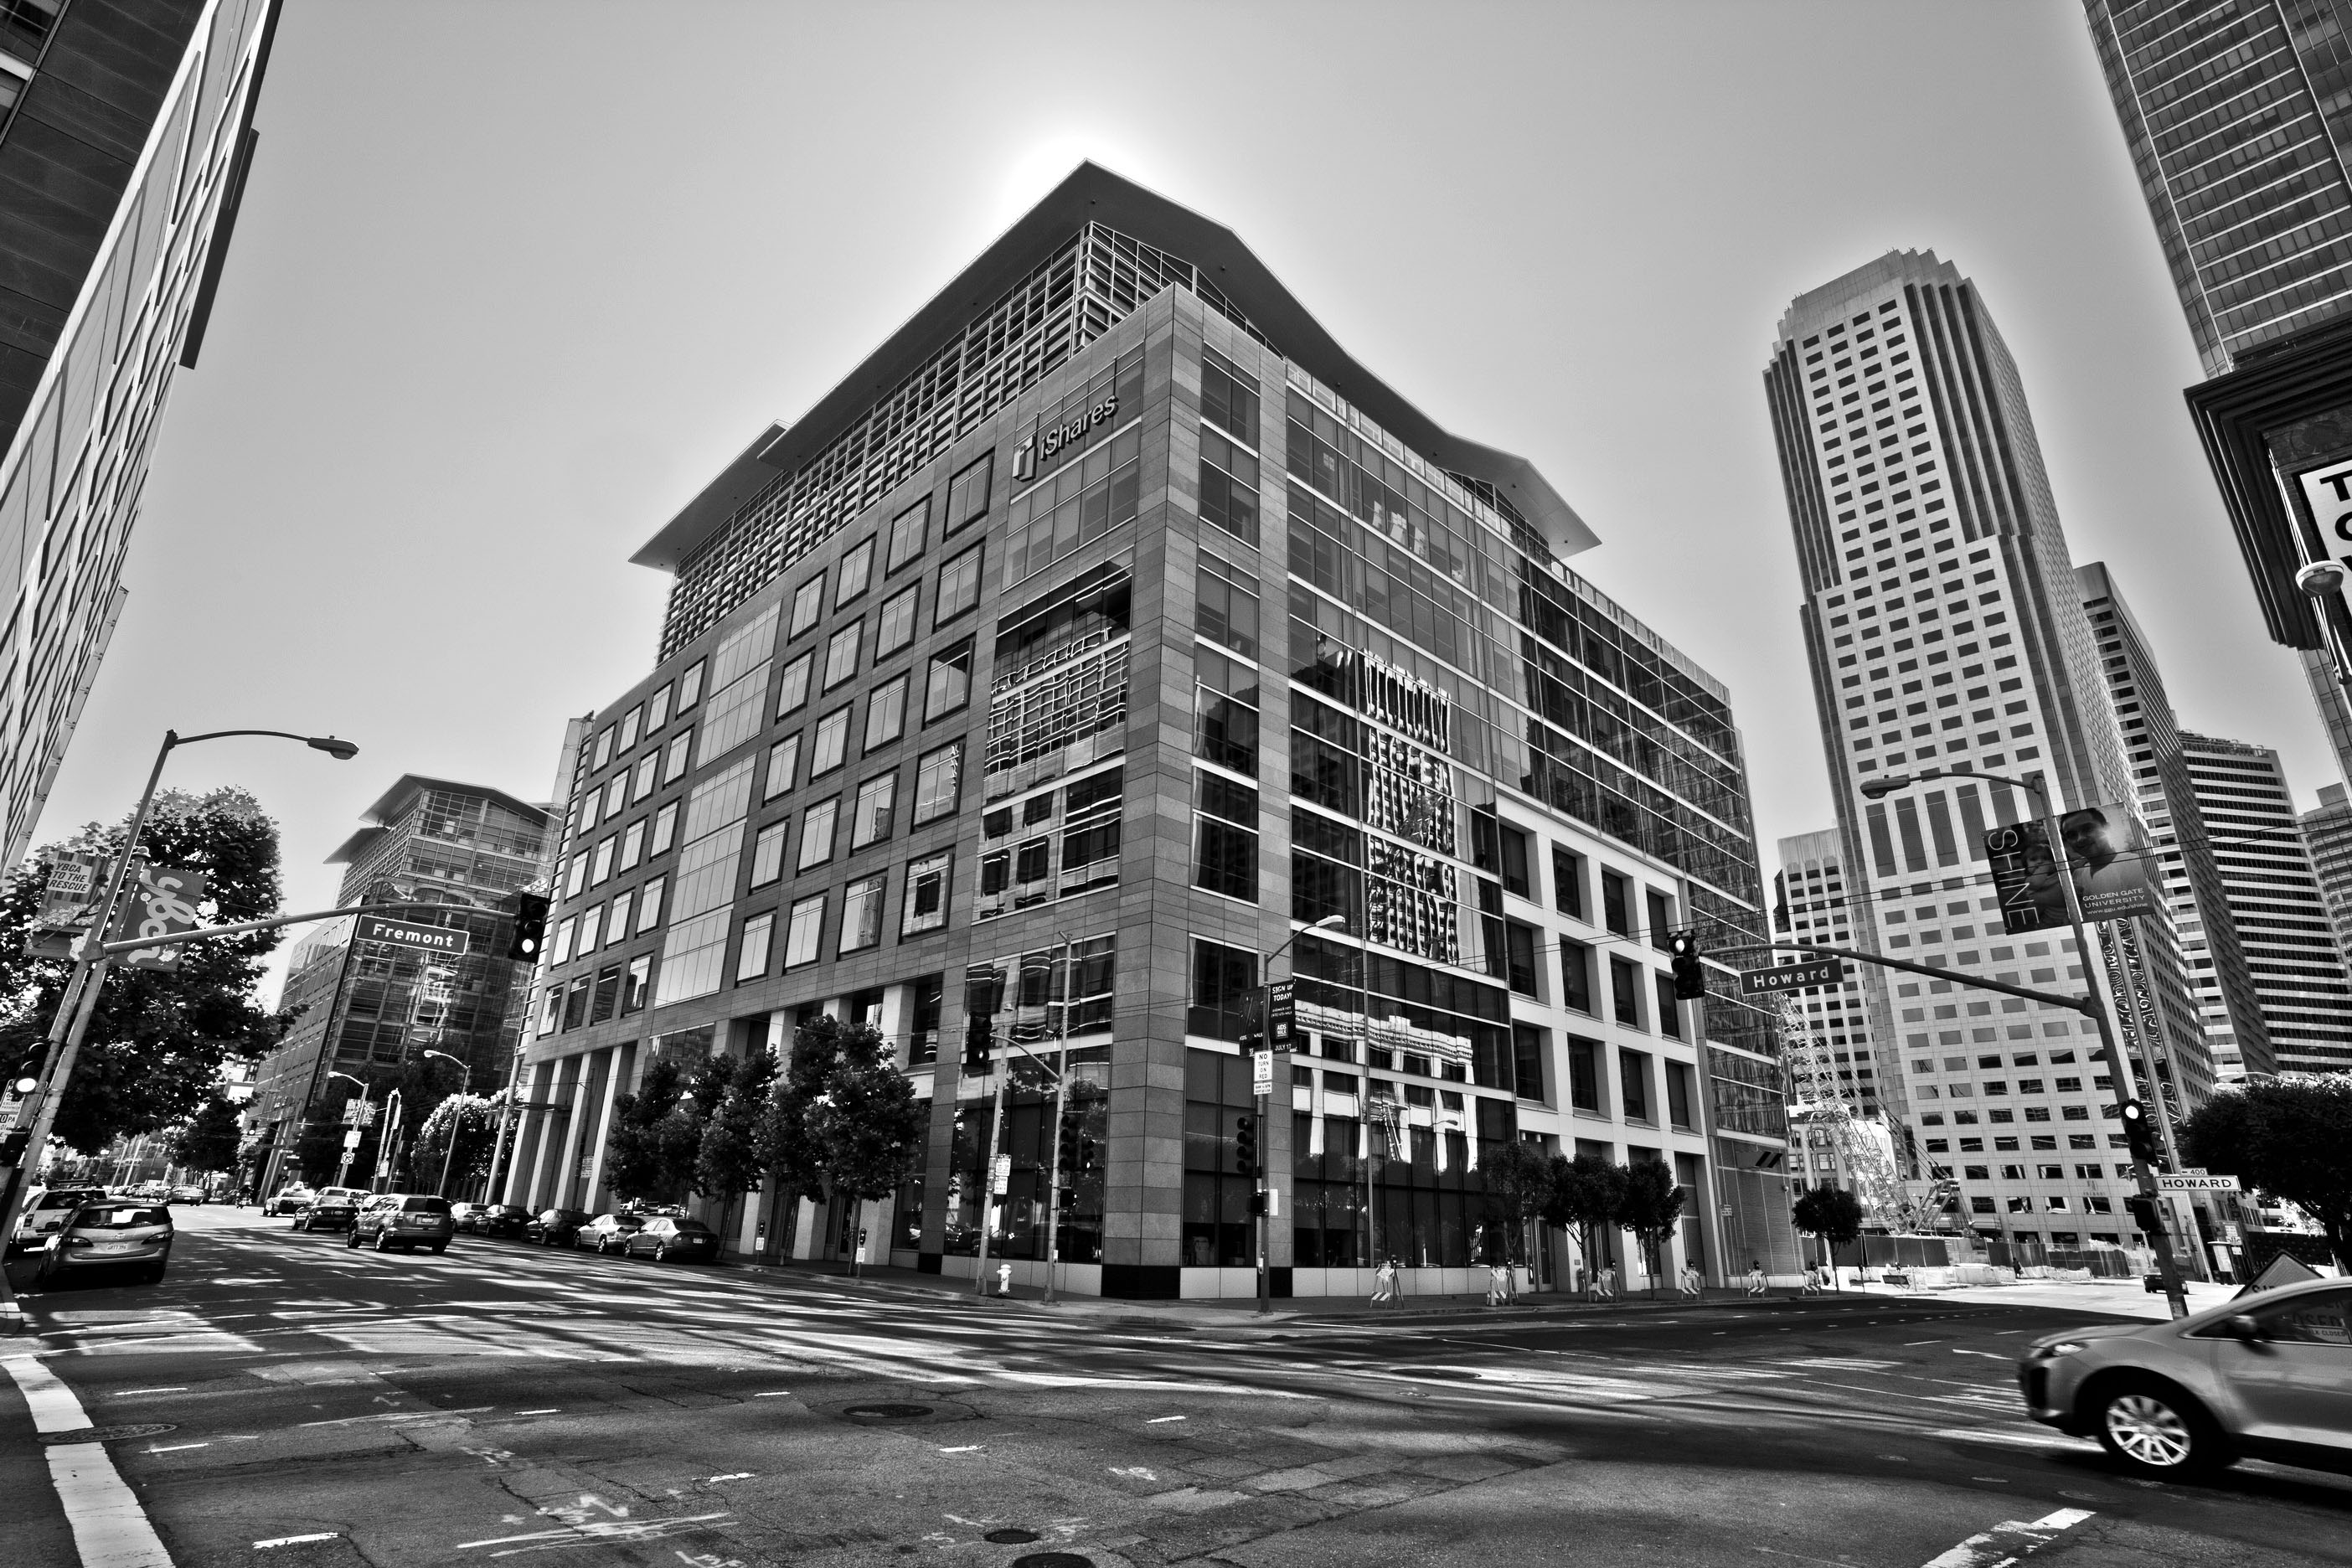 Architecture iStock Bldg cnr Howard and Fremont St San Francisco CA July 2011 02